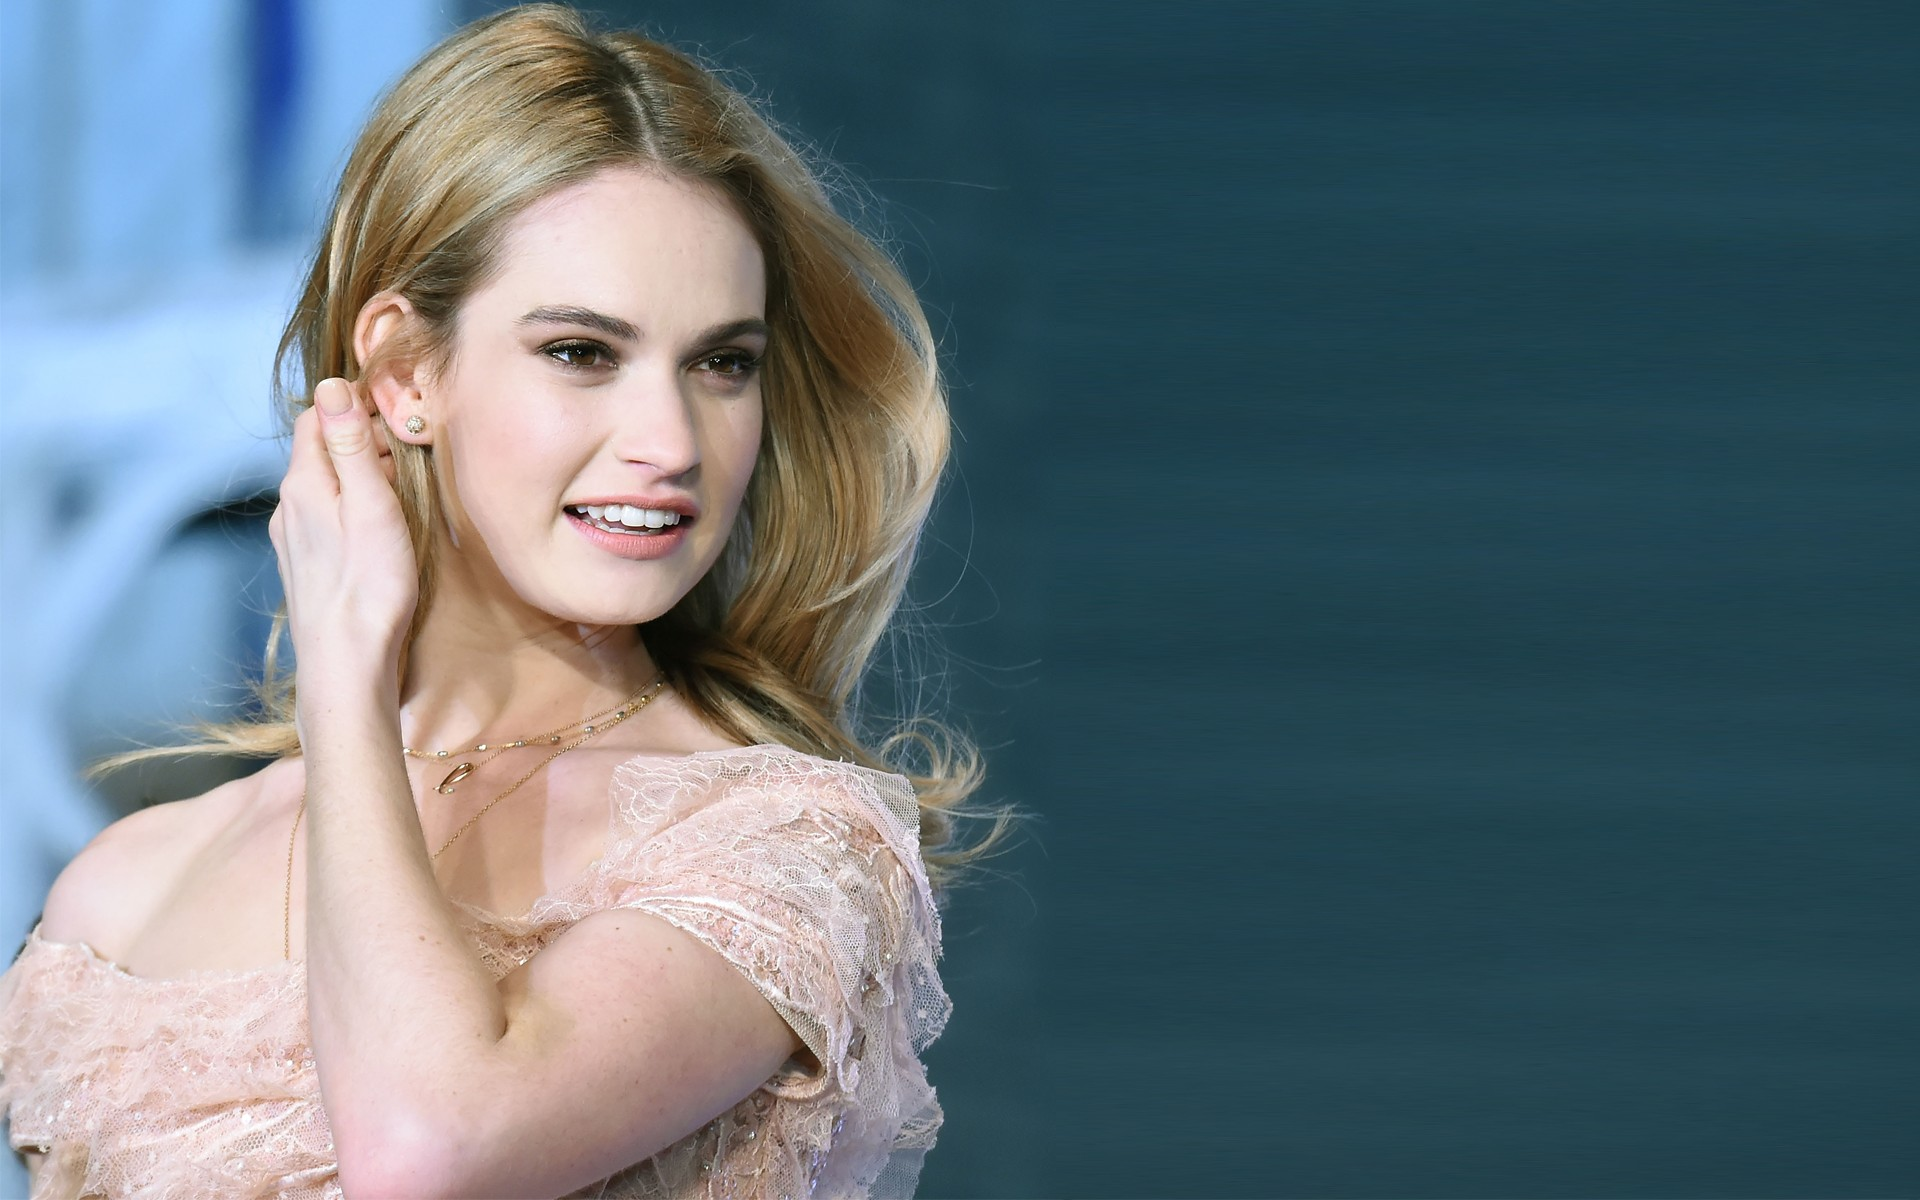 Lily James Wallpapers High Resolution and Quality Download 1920x1200